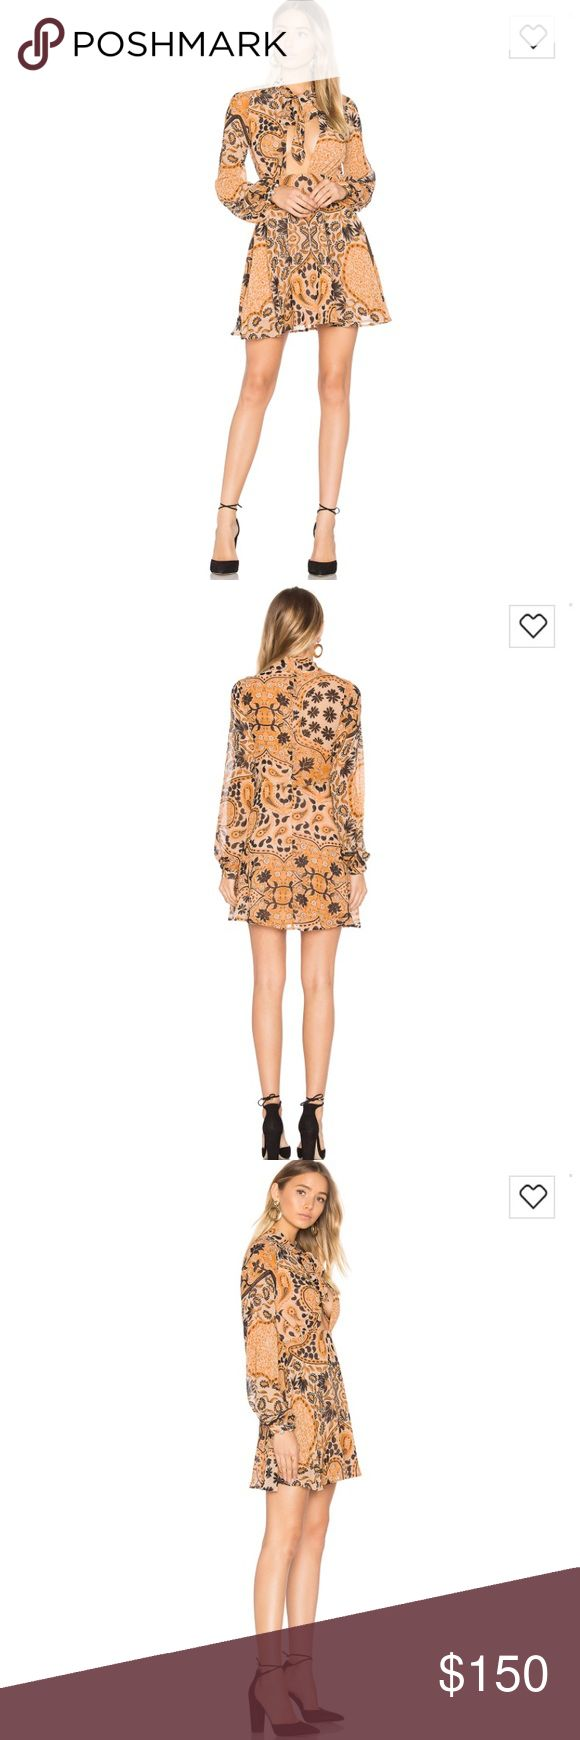 For Love and Lemons Elodi mini dress. Size M. NWT For Love and Lemons dress. Size M. NWT. Love this dress. Bought and having second thoughts about the low cut top. Still for sale on their website for $230.00 For Love and Lemons Dresses